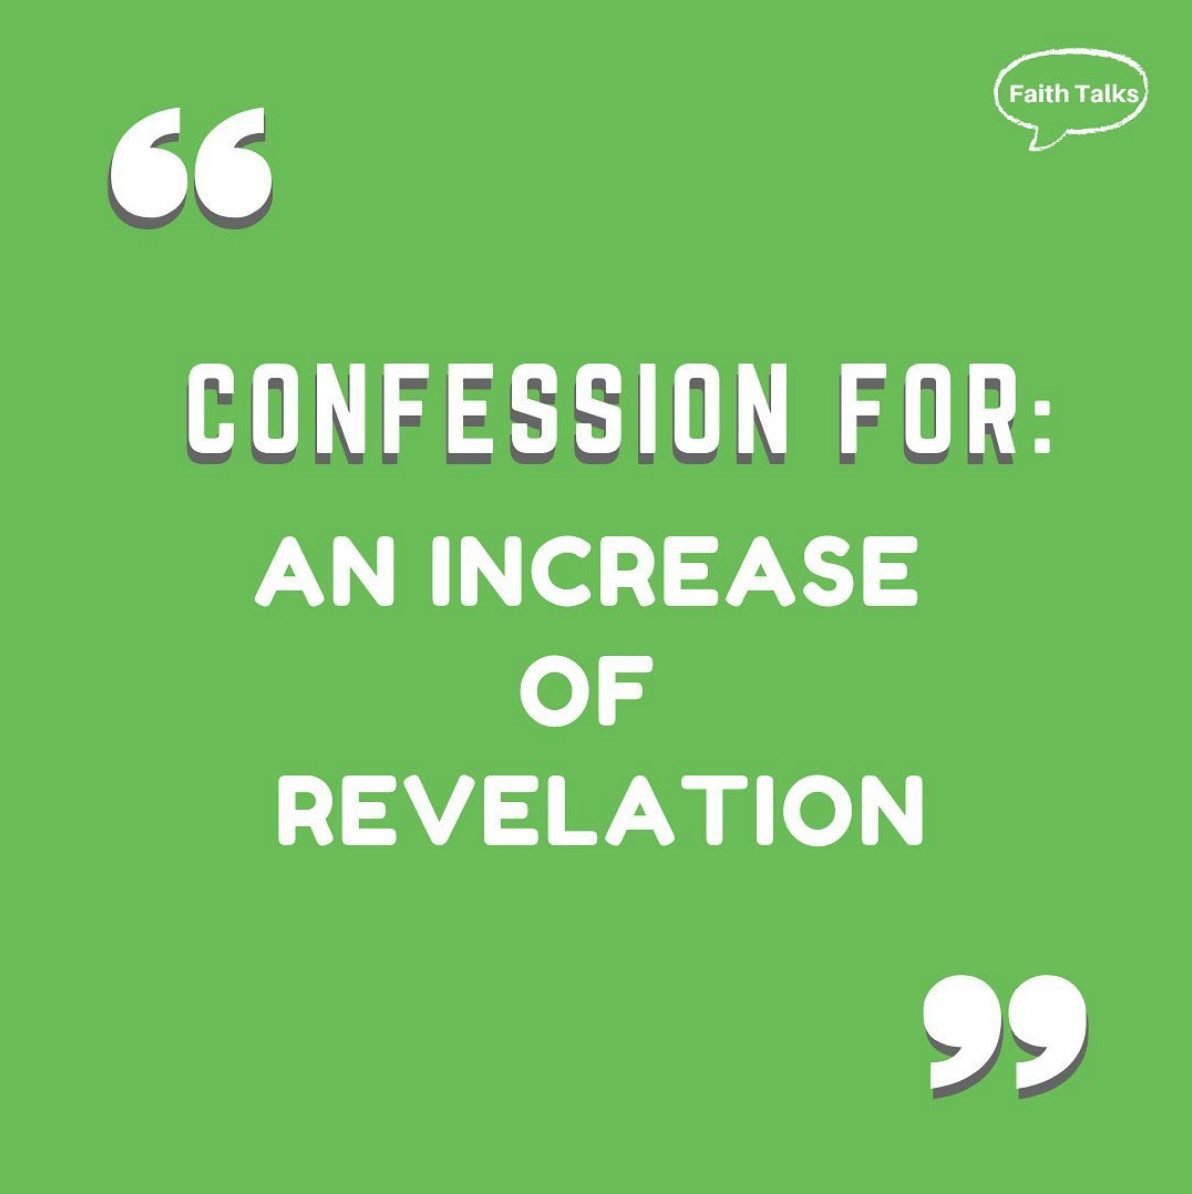 Confession for: An increase of revelation